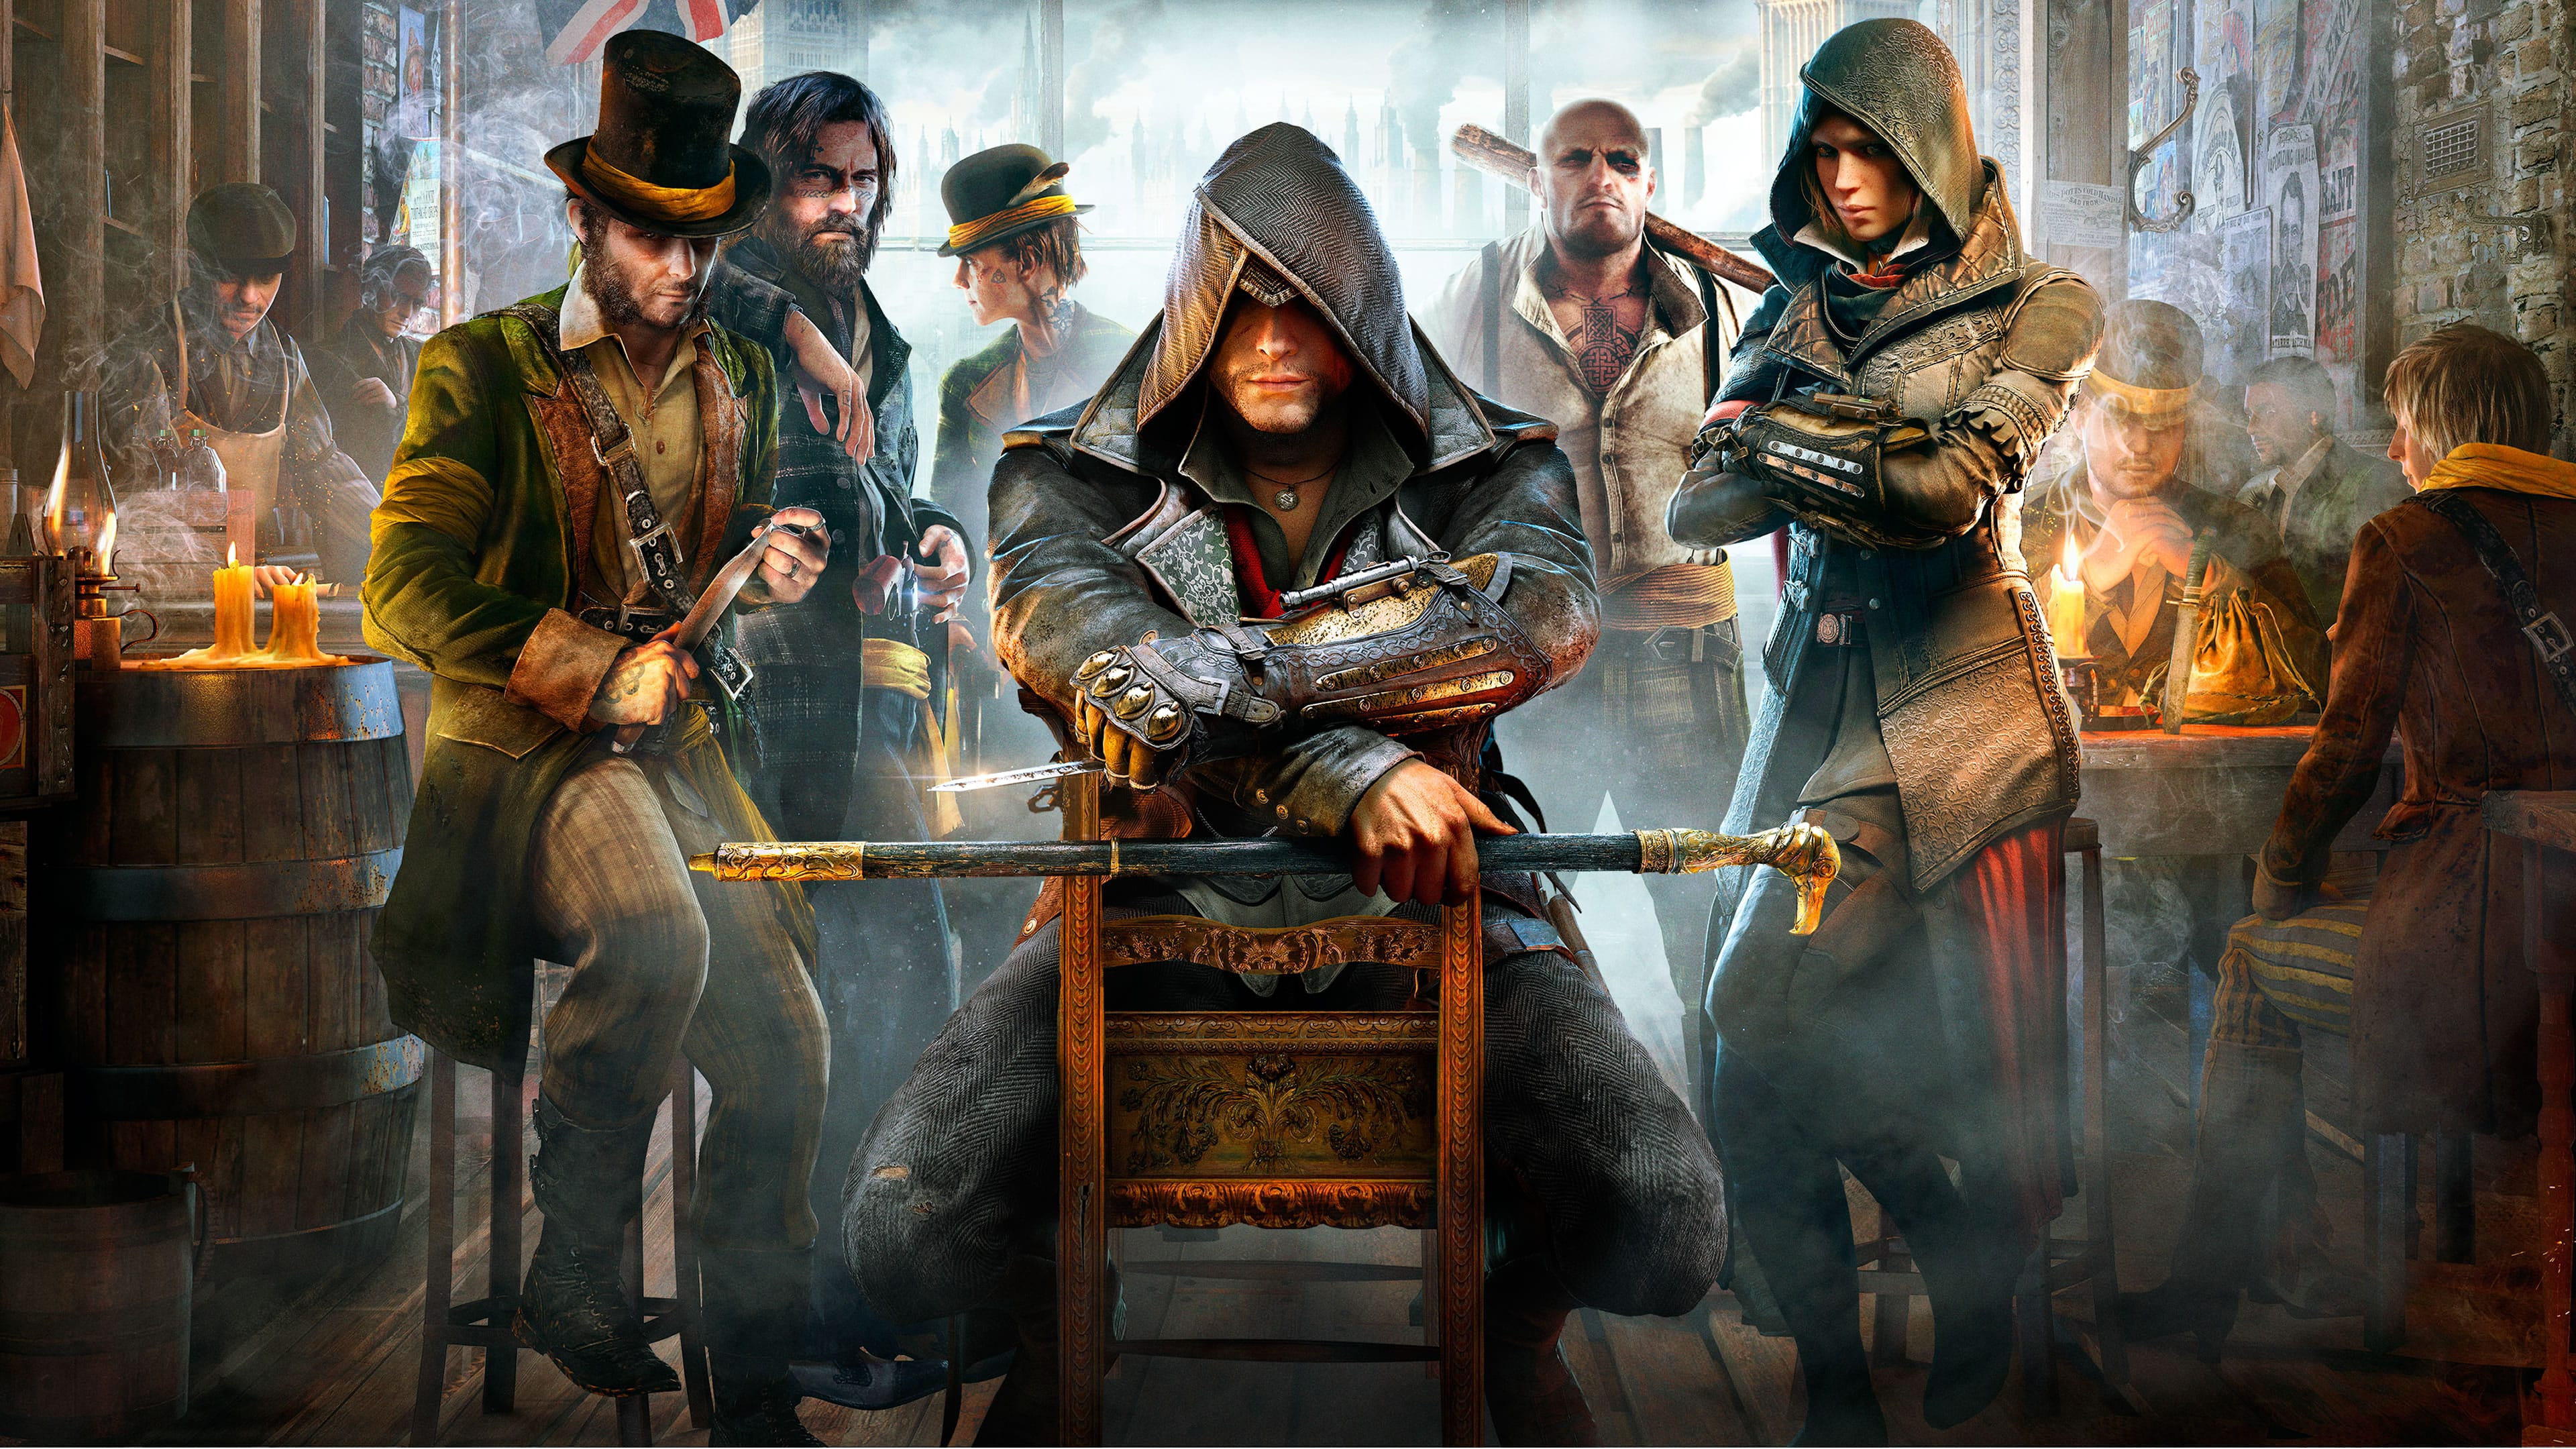 Assassin's Creed: Syndicate widescreen wallpapers